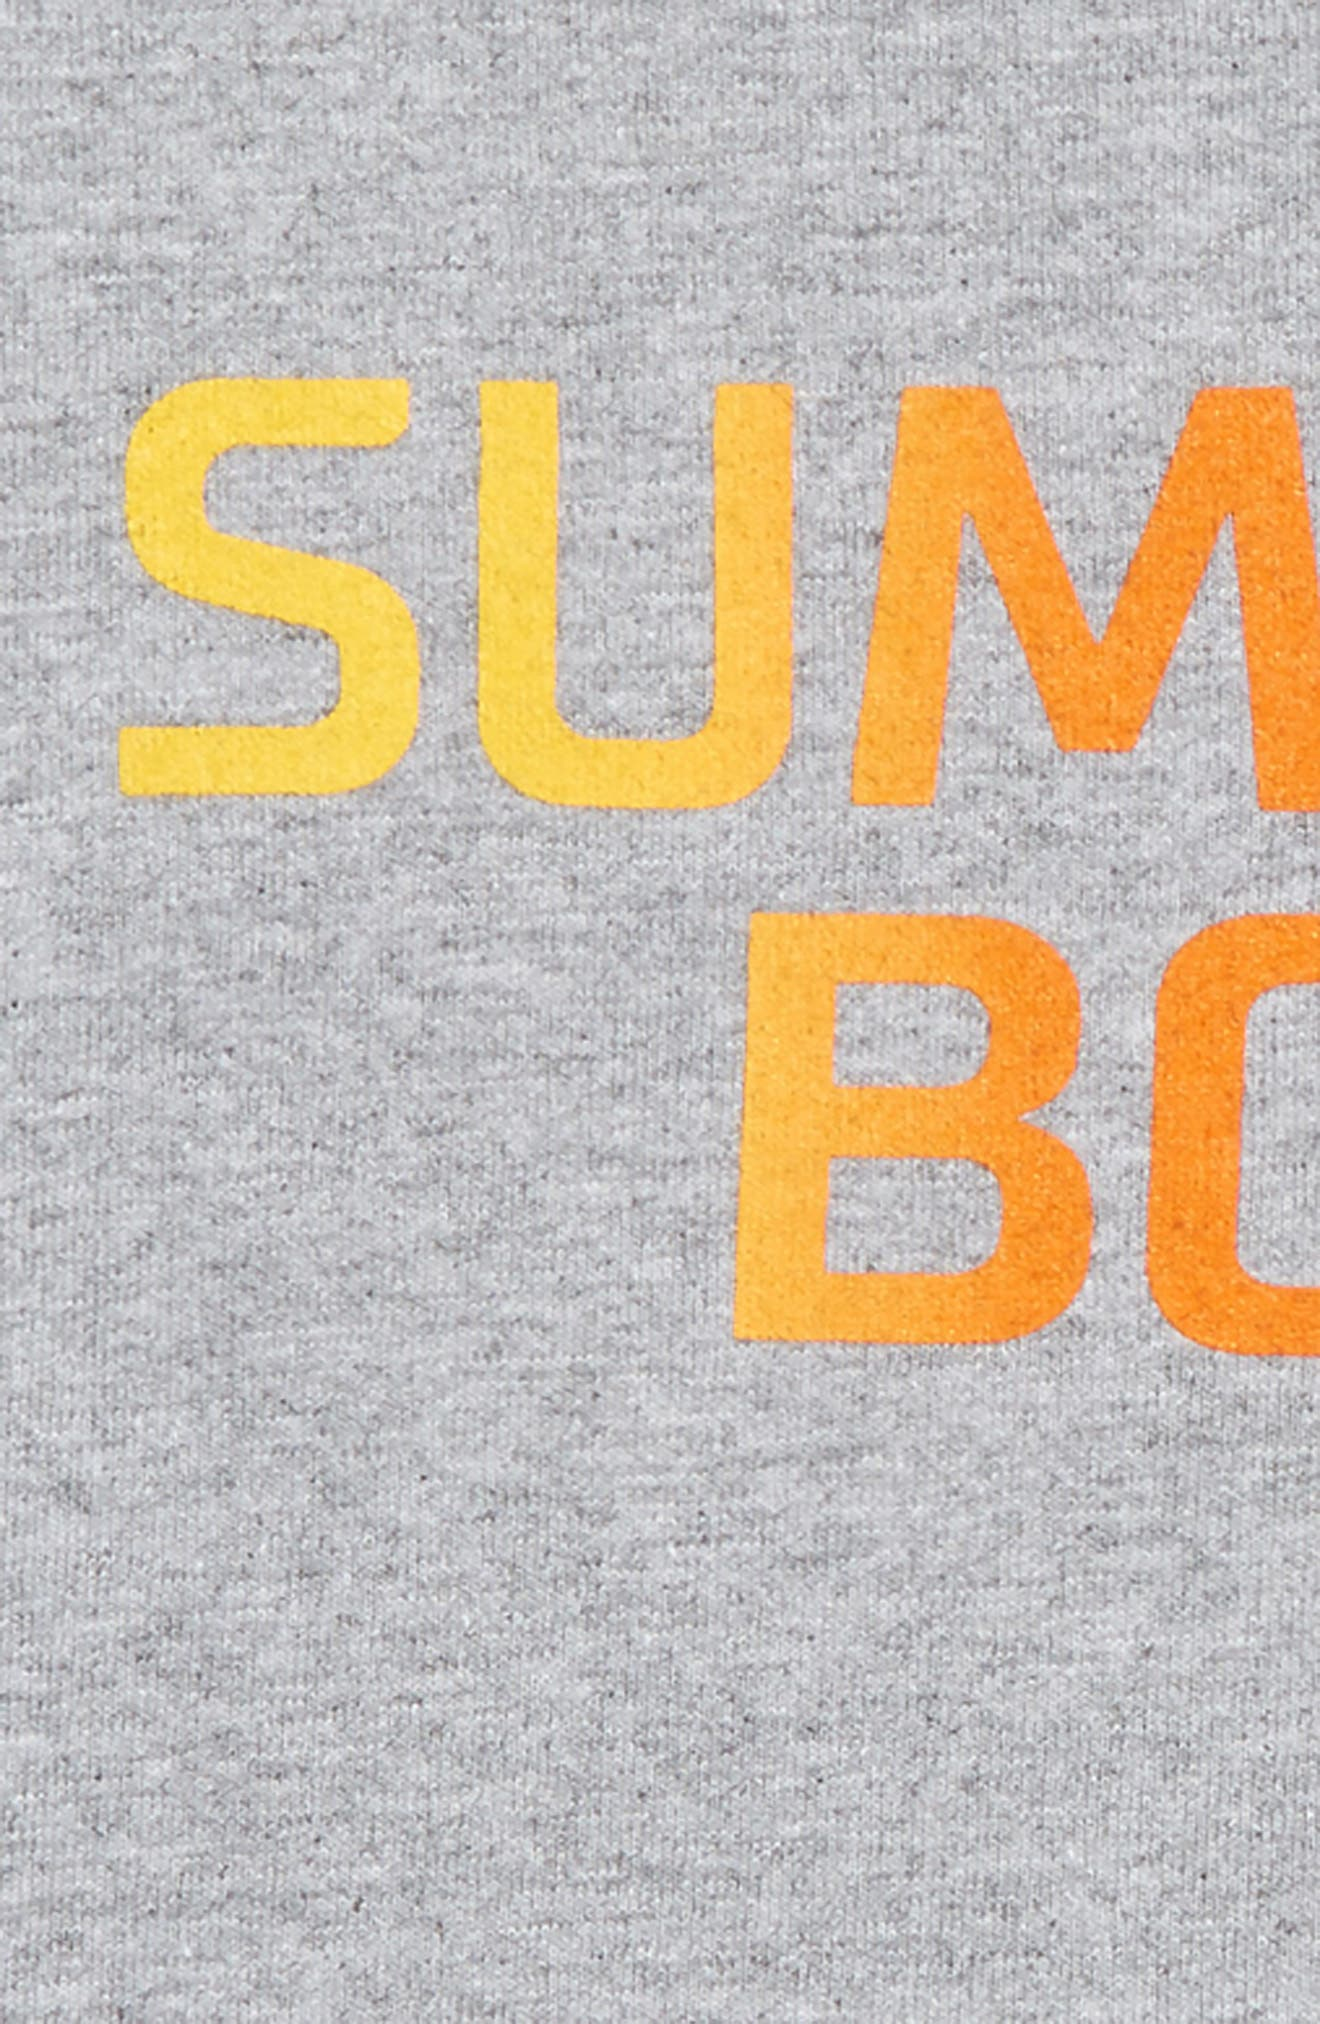 Alternate Image 2  - DiLascia Summer Boy Graphic T-Shirt (Toddler Boys, Little Boys & Big Boys)